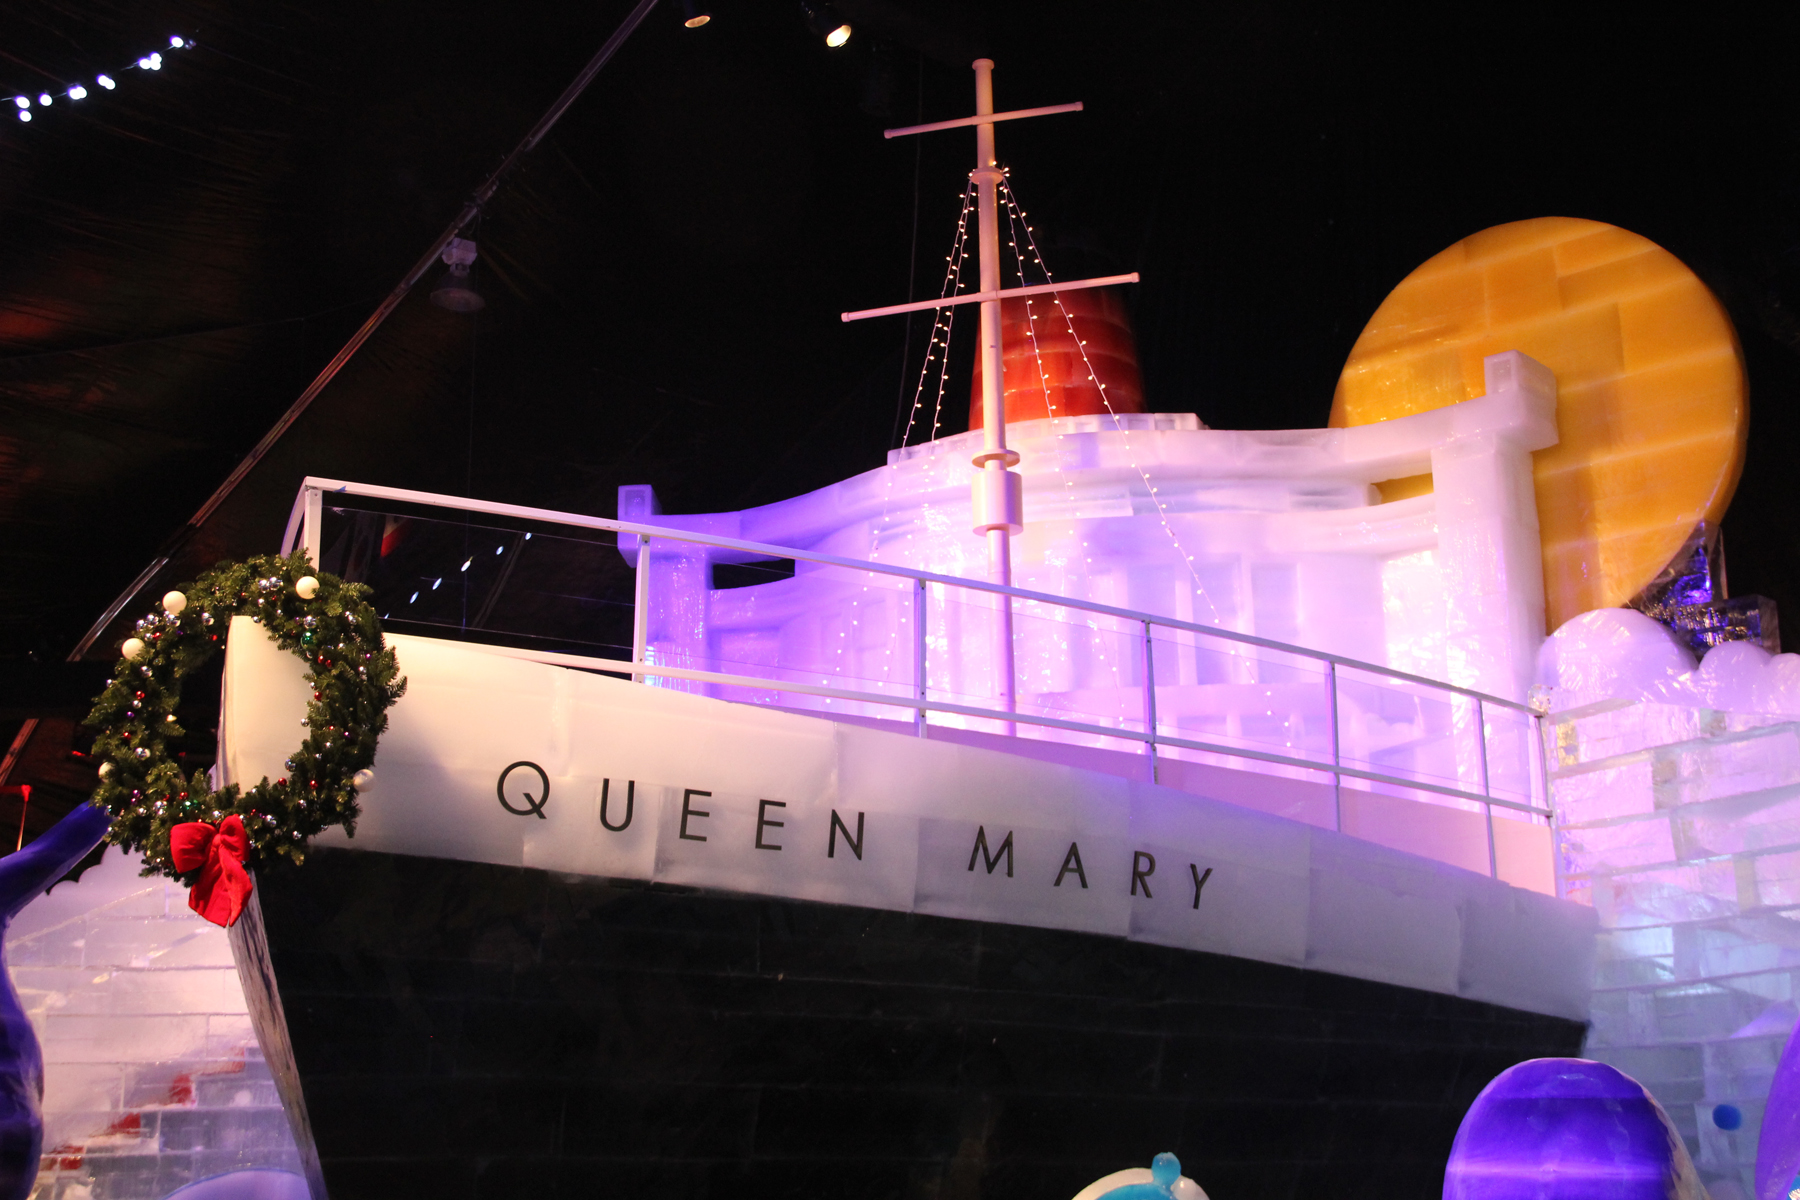 Family Travel: Hop Aboard the Queen Mary in Los Angeles